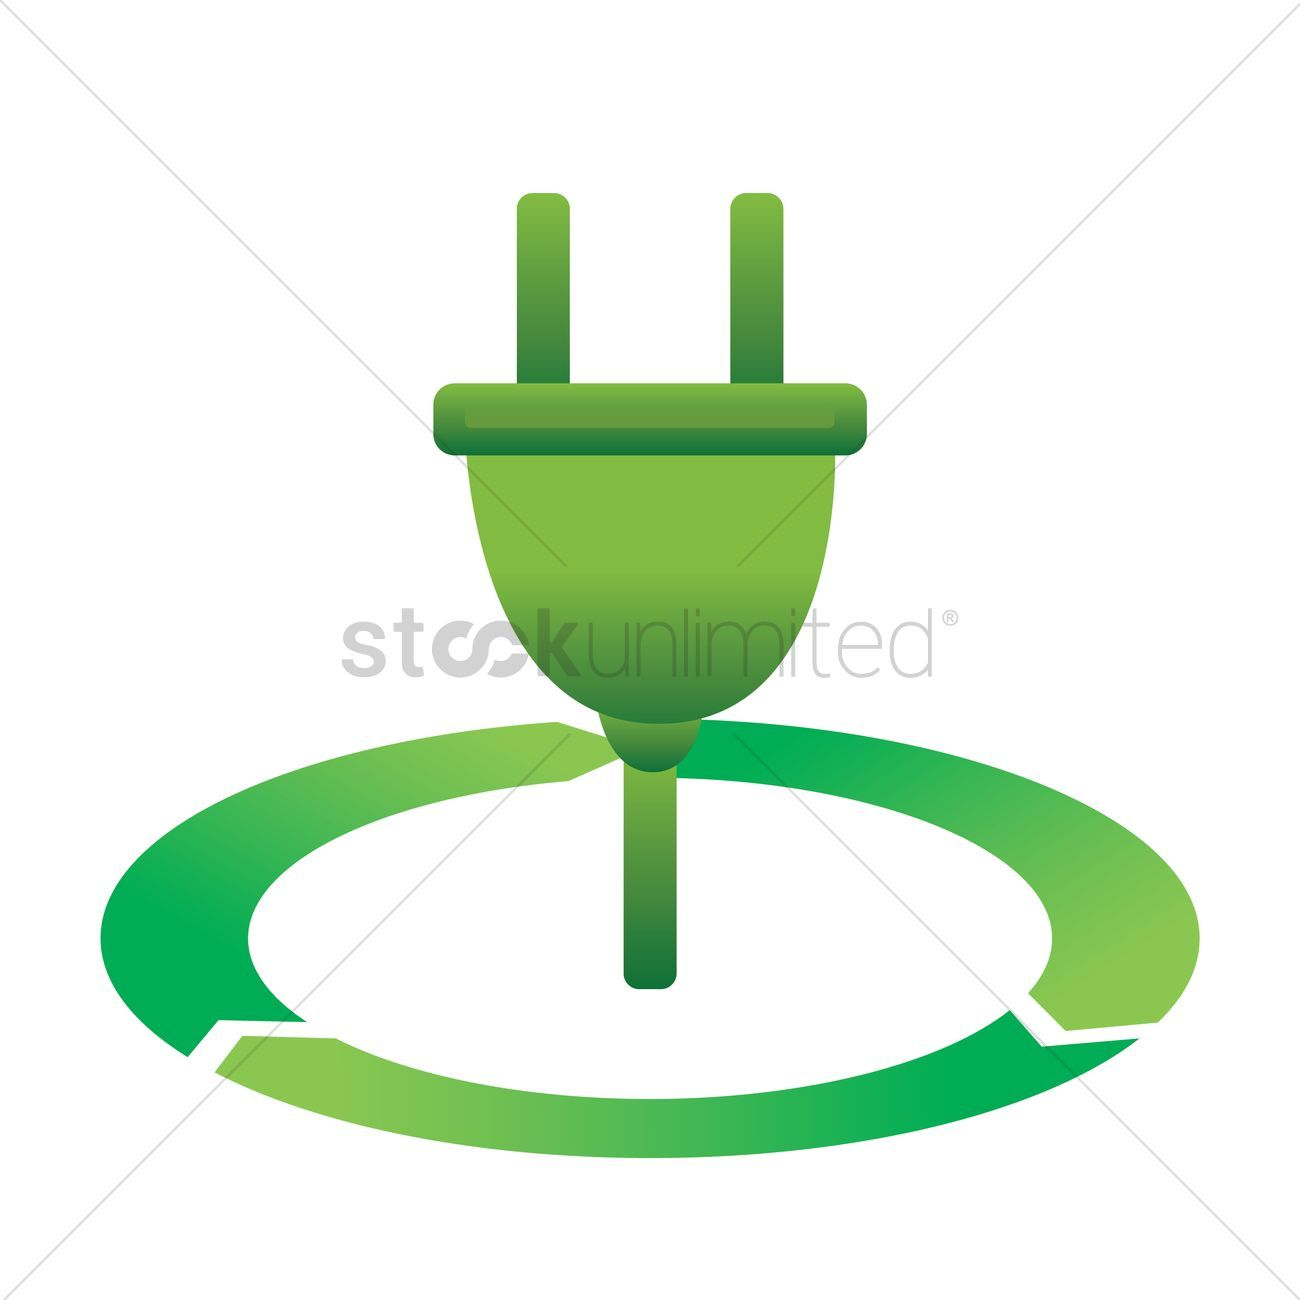 Ecology plug vectors stock clipart